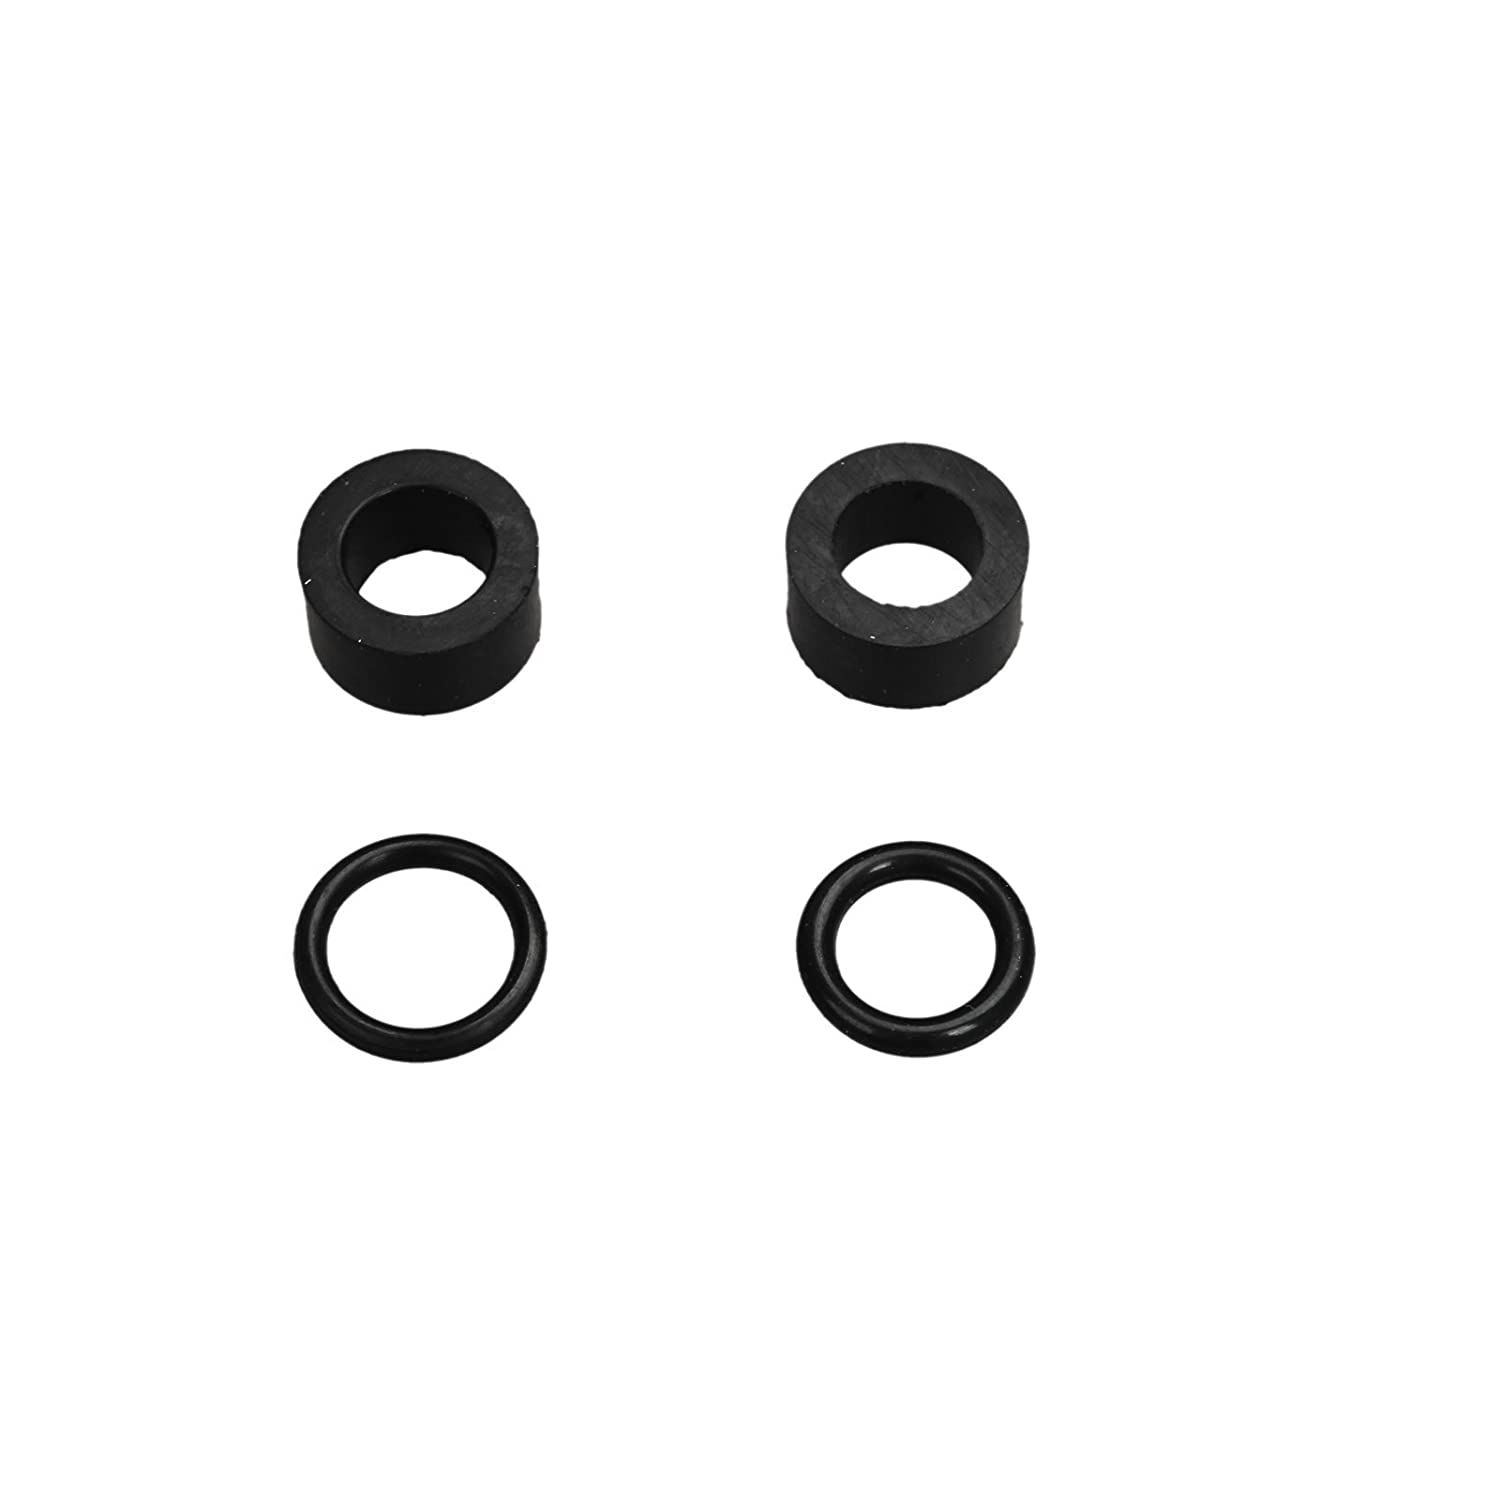 yjracing Fuel Bowl Reseal Kit W//Vibra-Locs Fit for 1998-2003 7.3 Ford Powerstroke Diesel